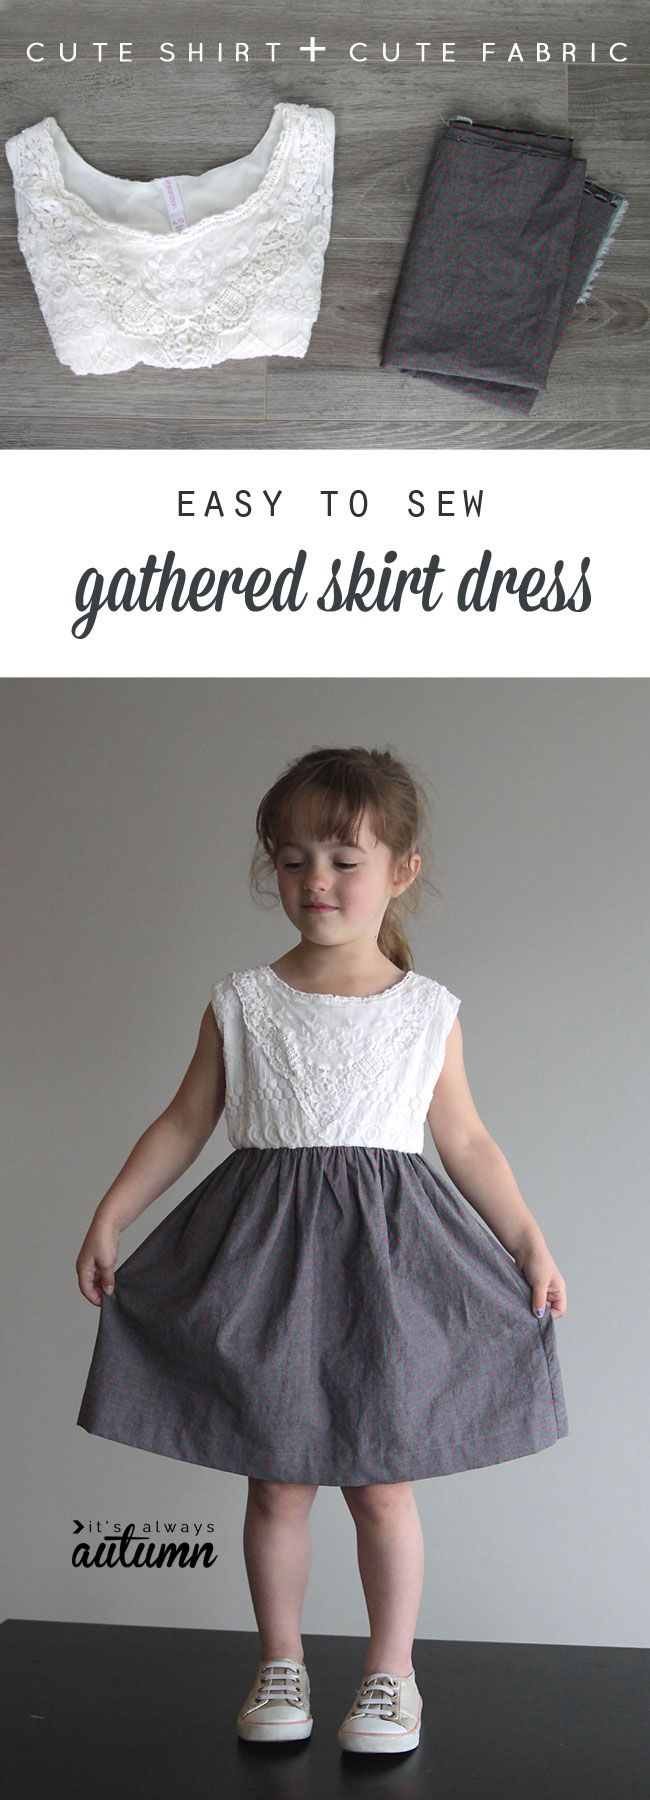 all you need is a cute tee and some fabric to make this super easy gathered skirt dress.